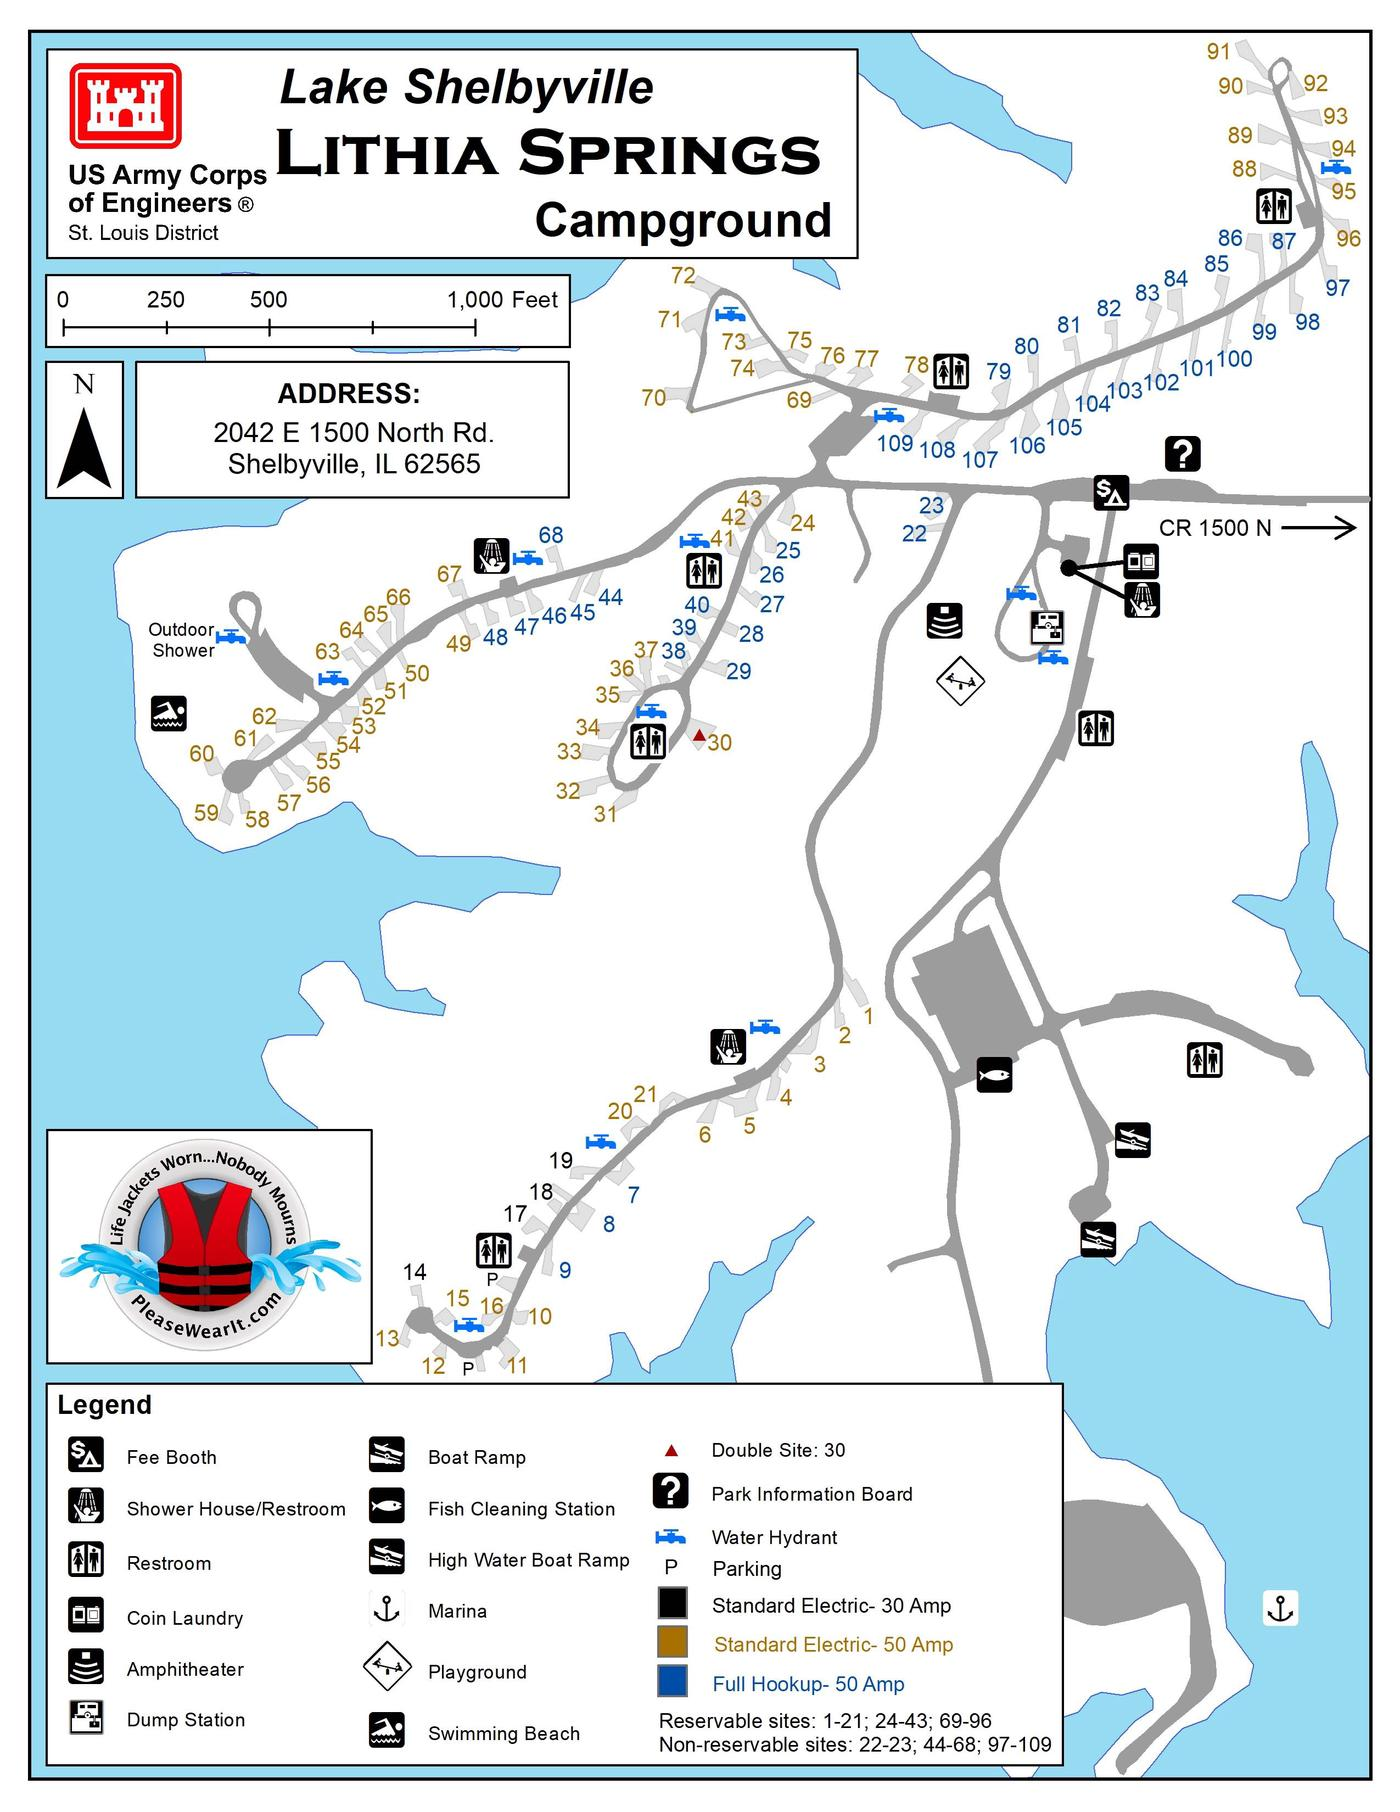 Lithia Springs Campground MapCampground Map 2019